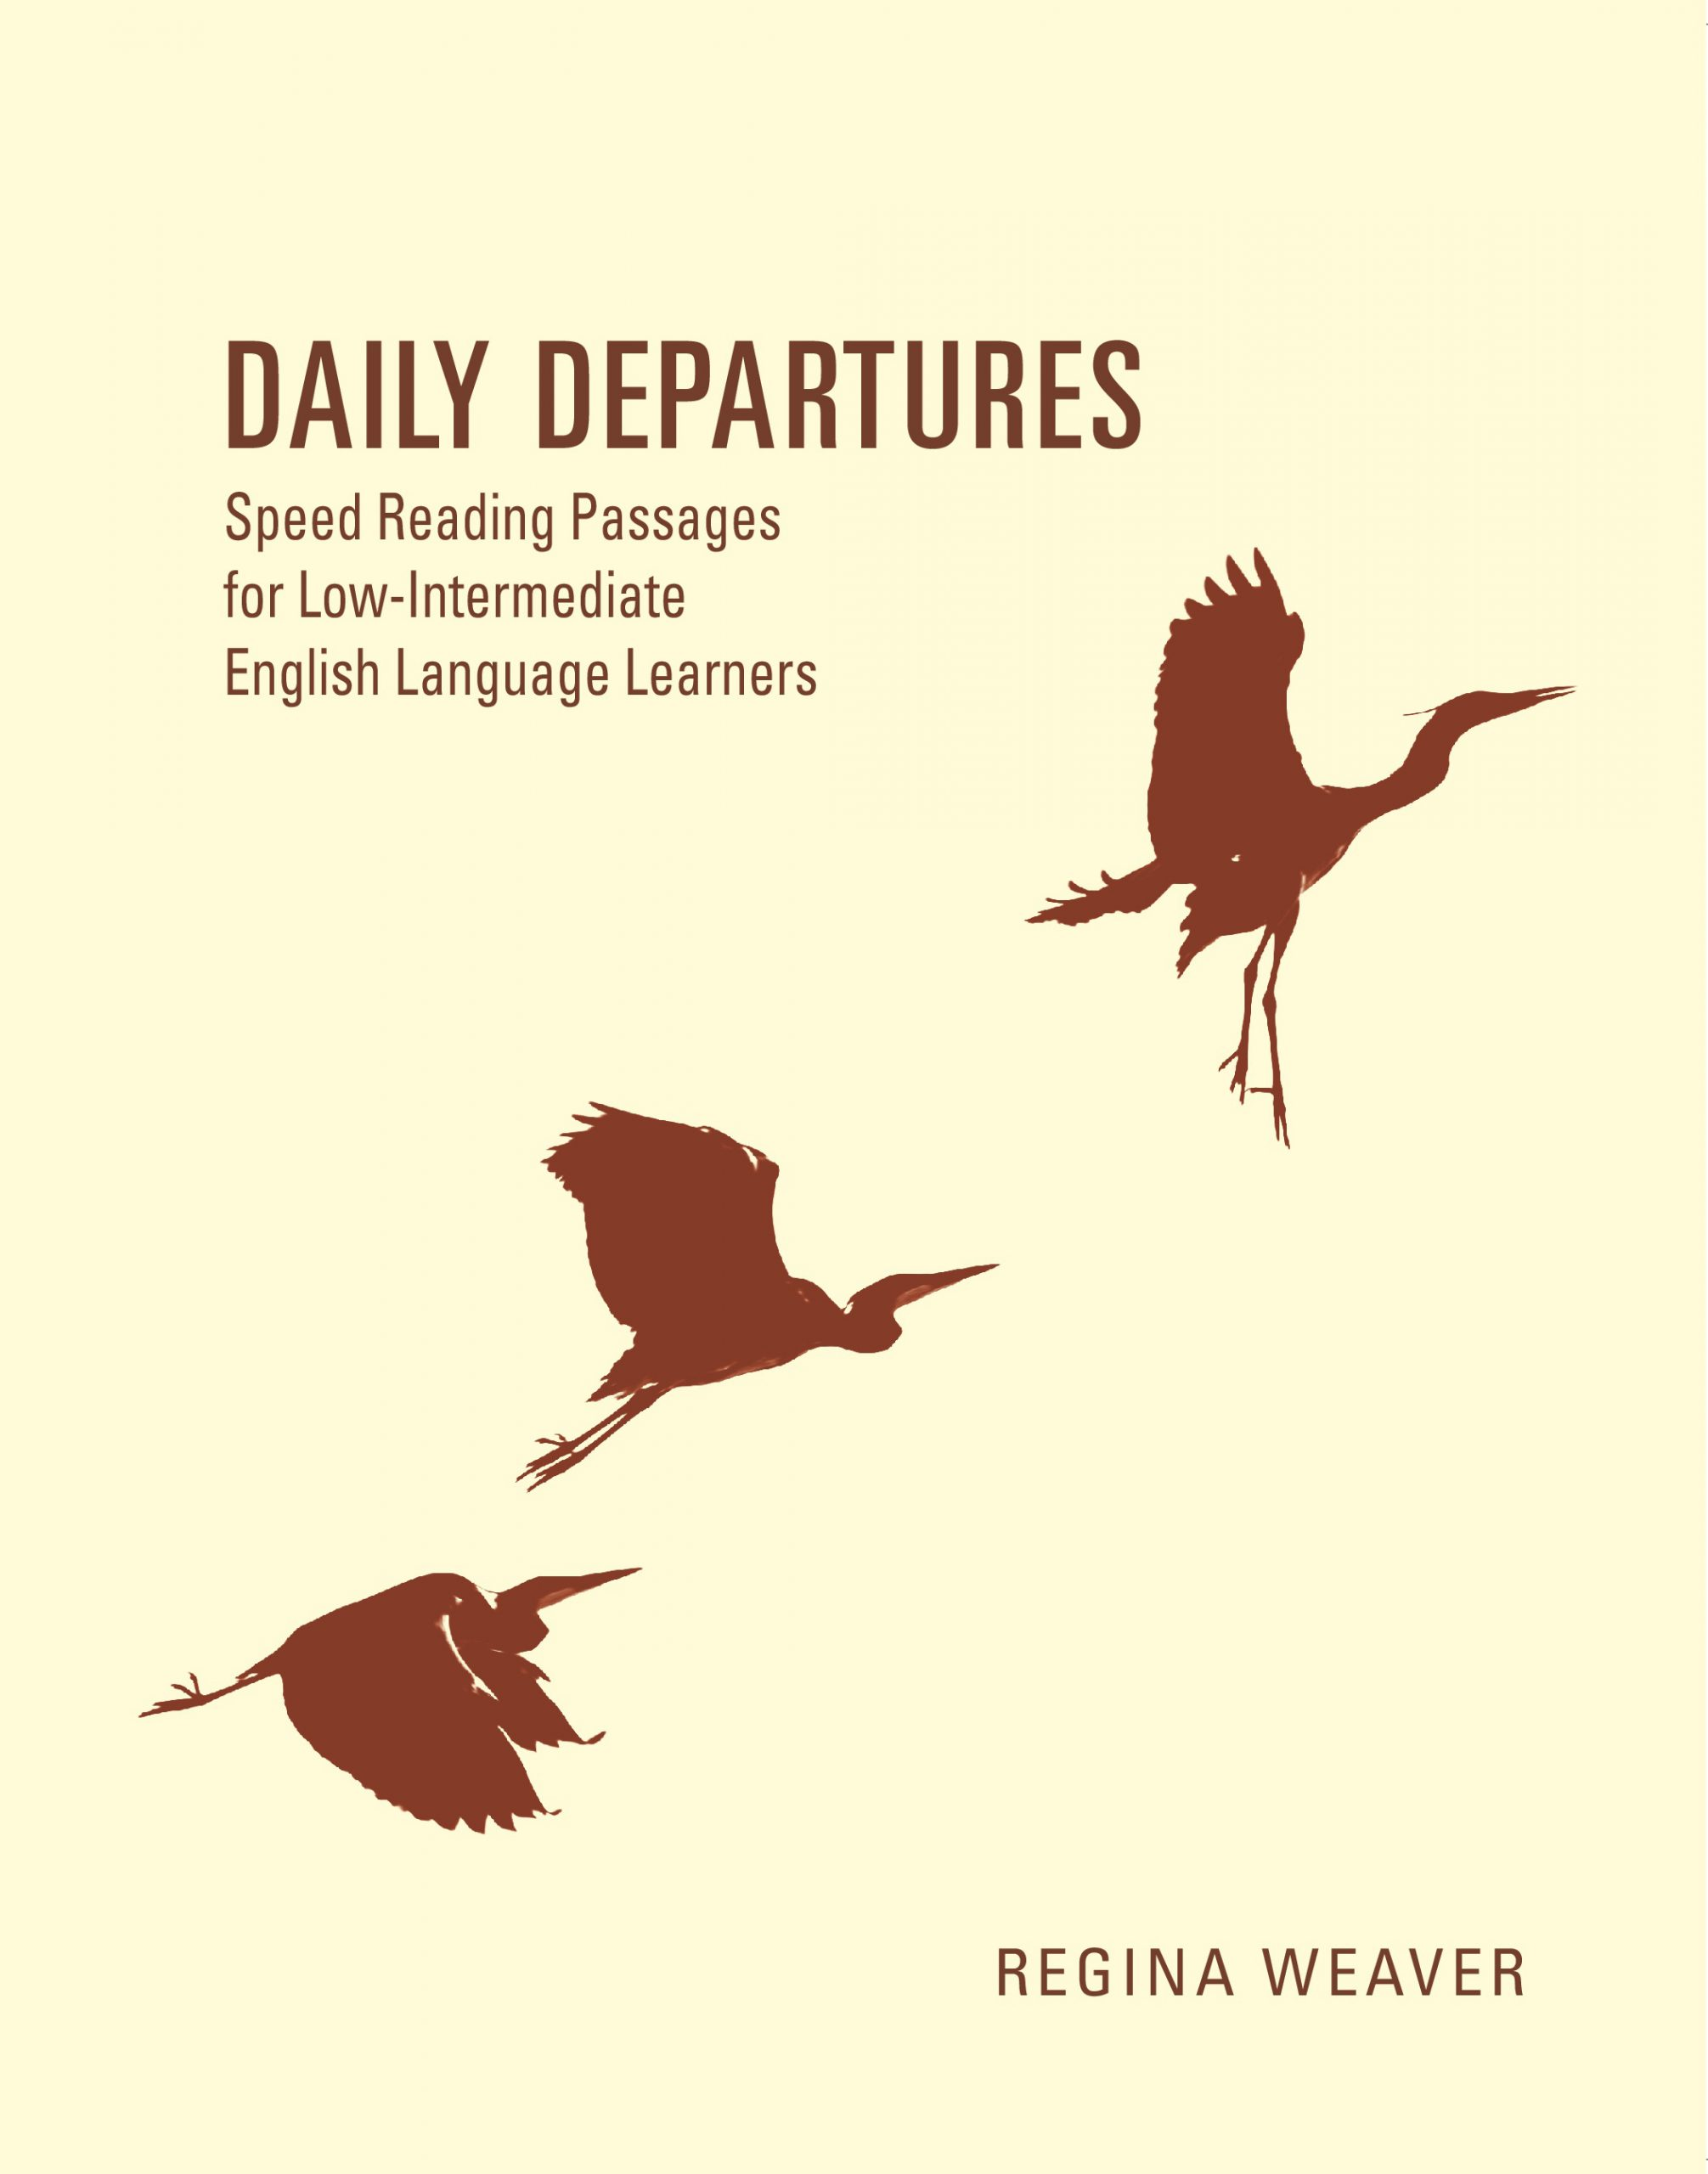 Cover image for Daily Departures: Speed Reading Passages for English Language Learners